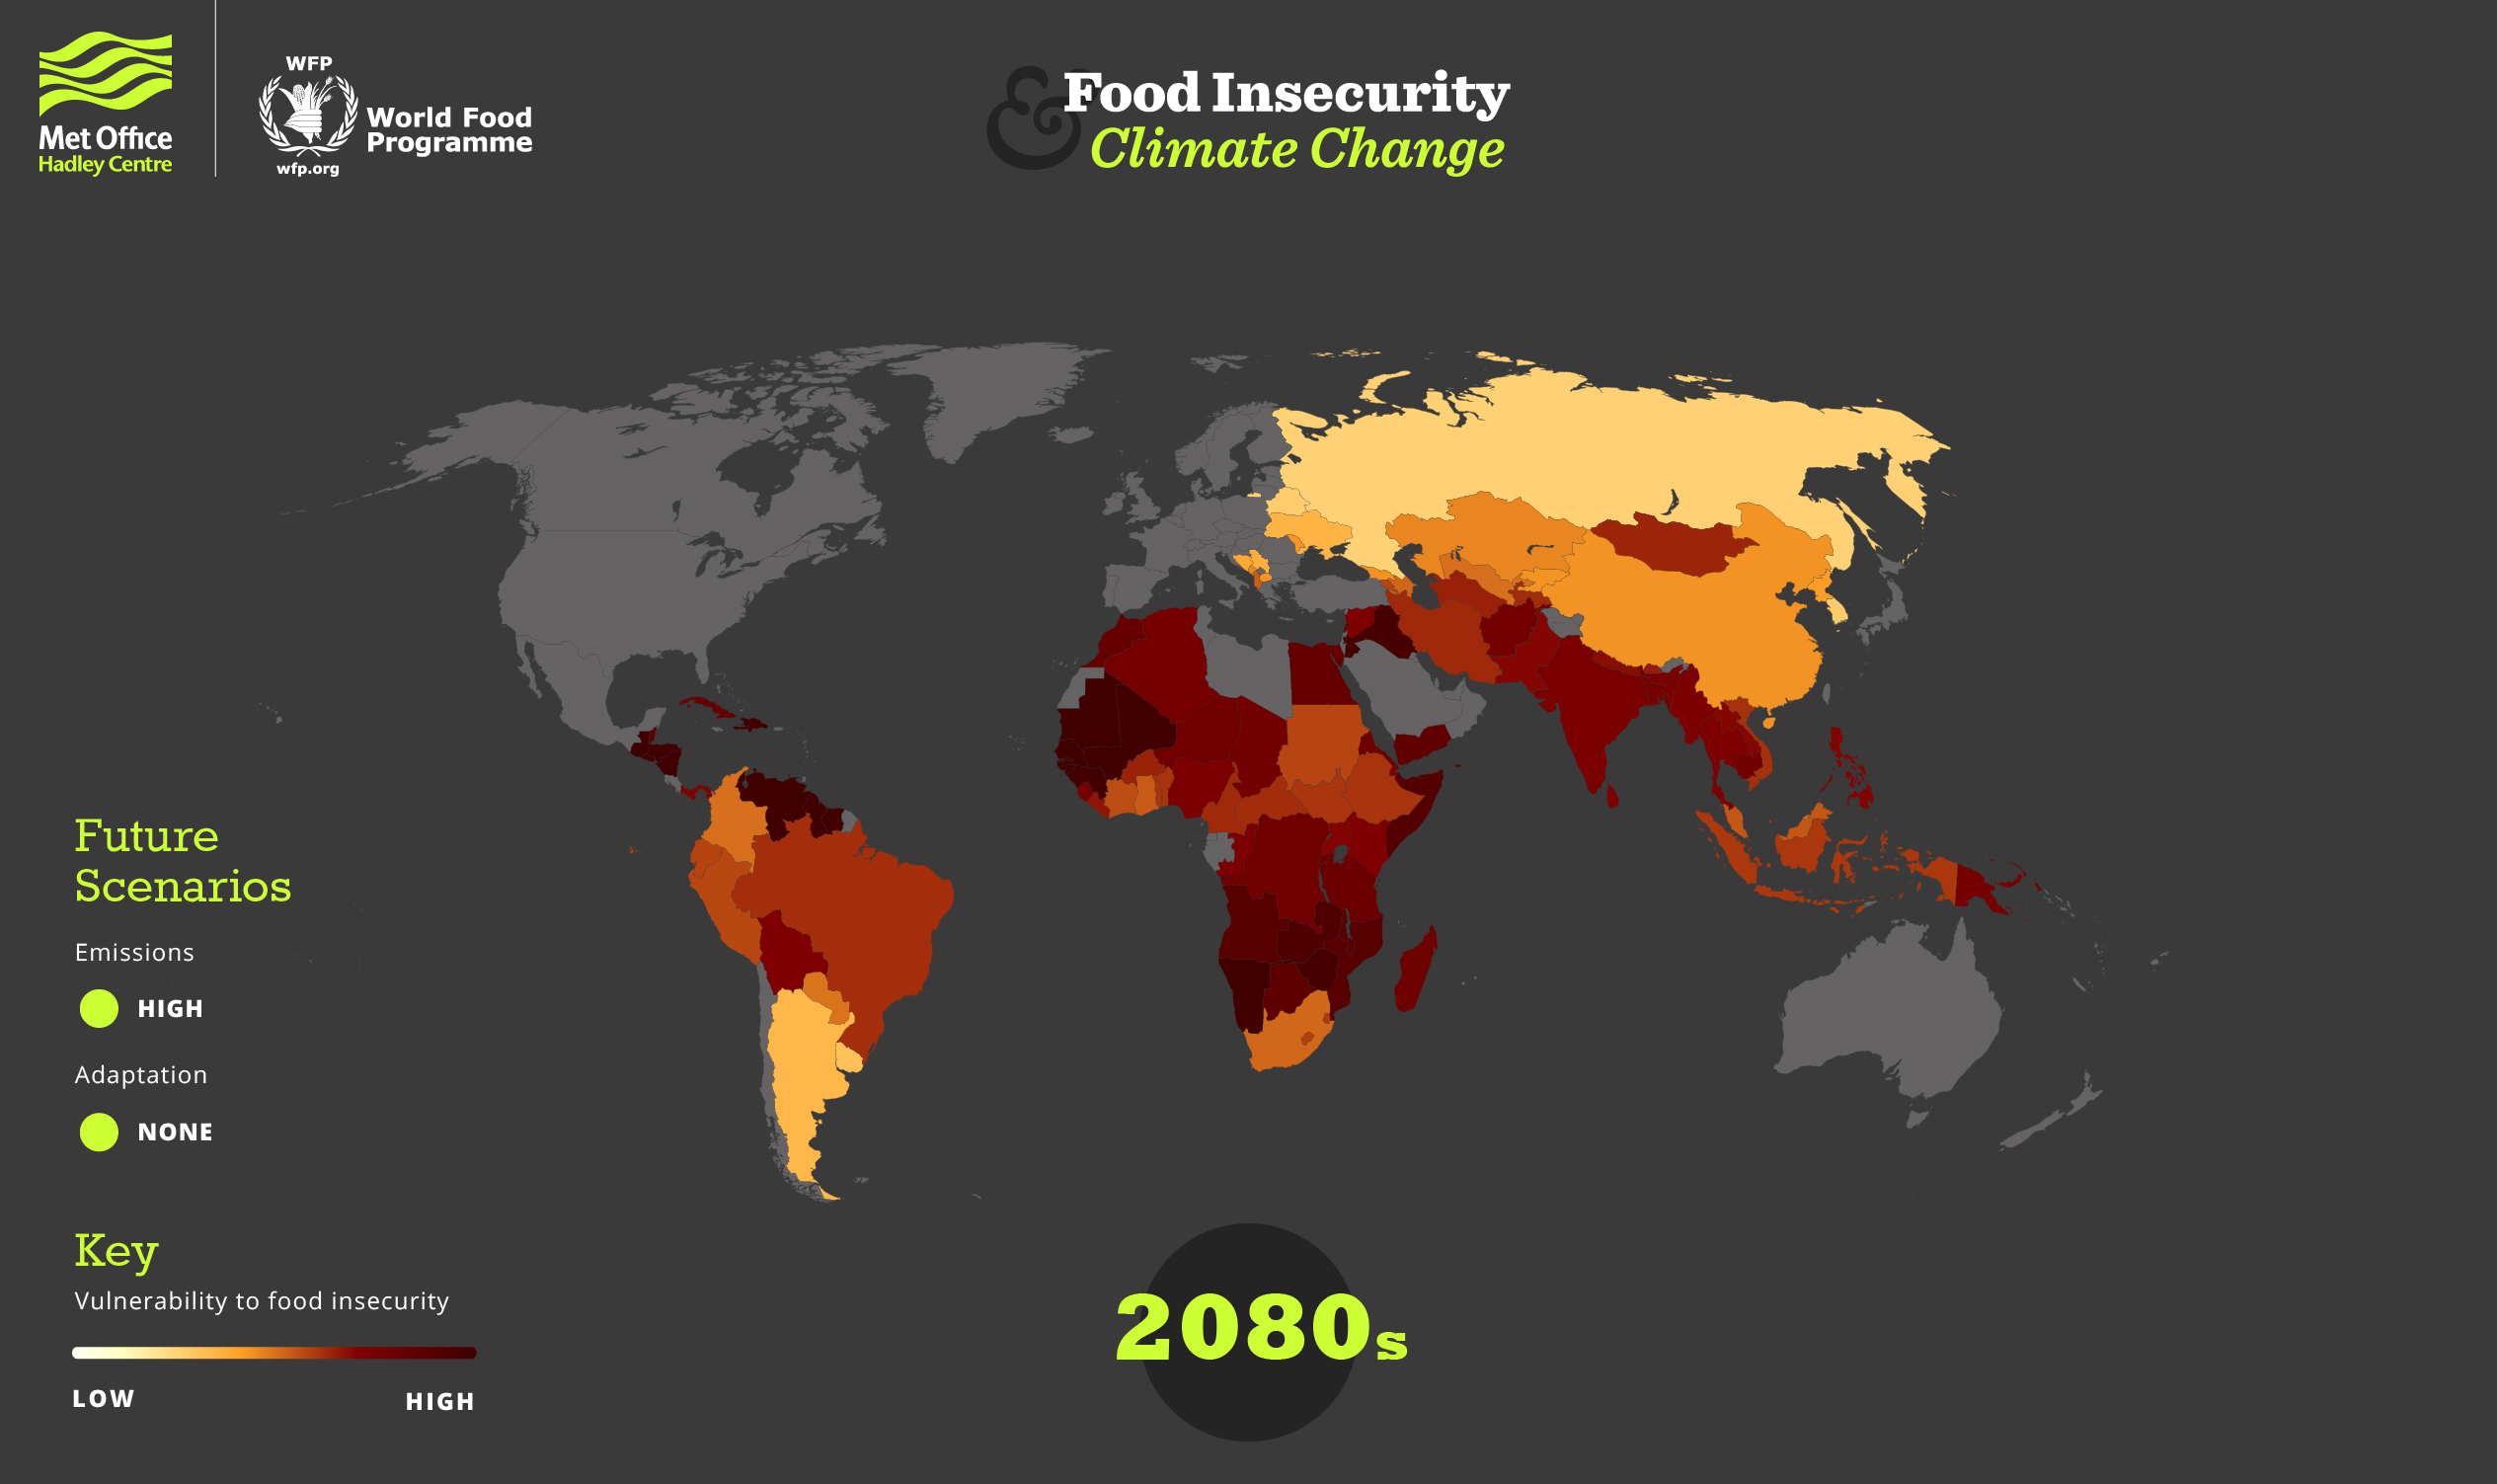 Food insecurity in 2080